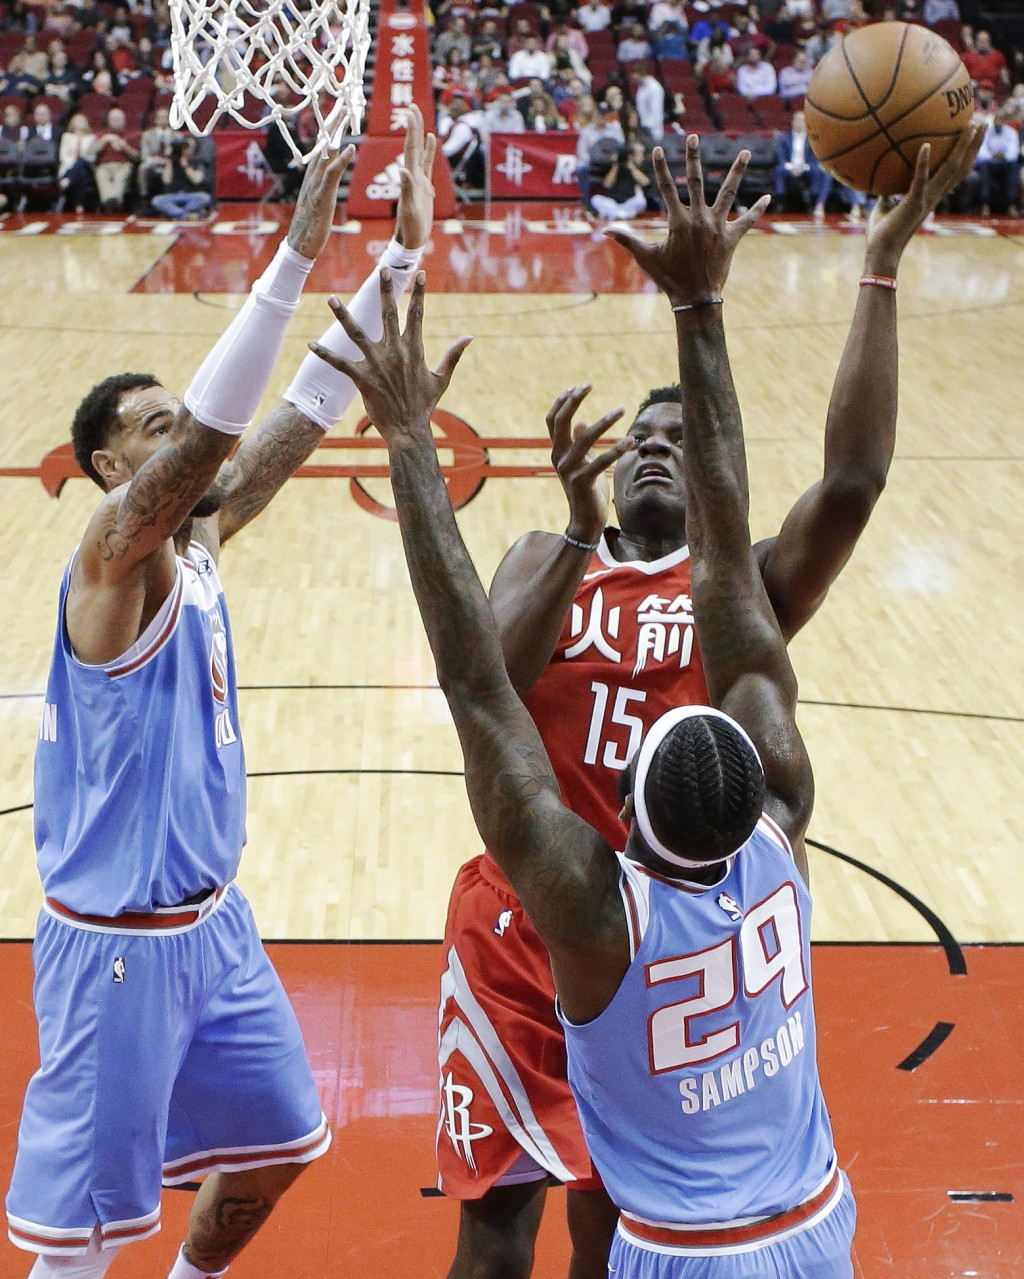 Houston Rockets center Clint Capela (15) shoots as Sacramento Kings forward JaKarr Sampson (29) and center Willie Cauley-Stein defend during the first